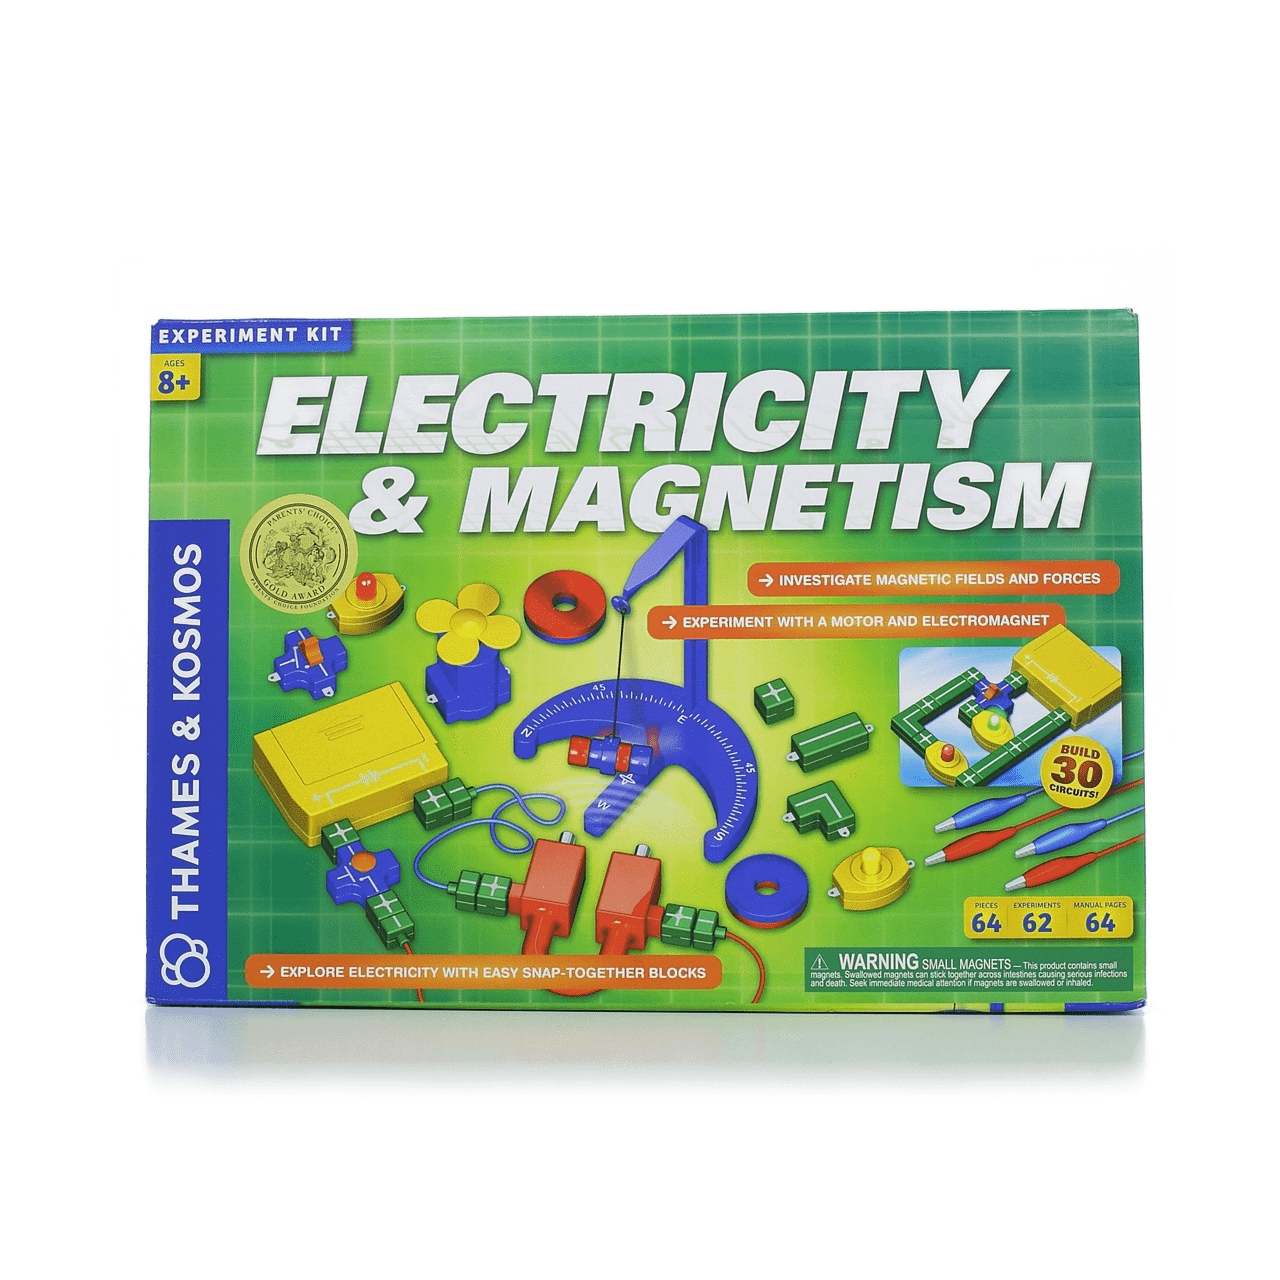 Electricity & Magnestism-Kidding Around NYC